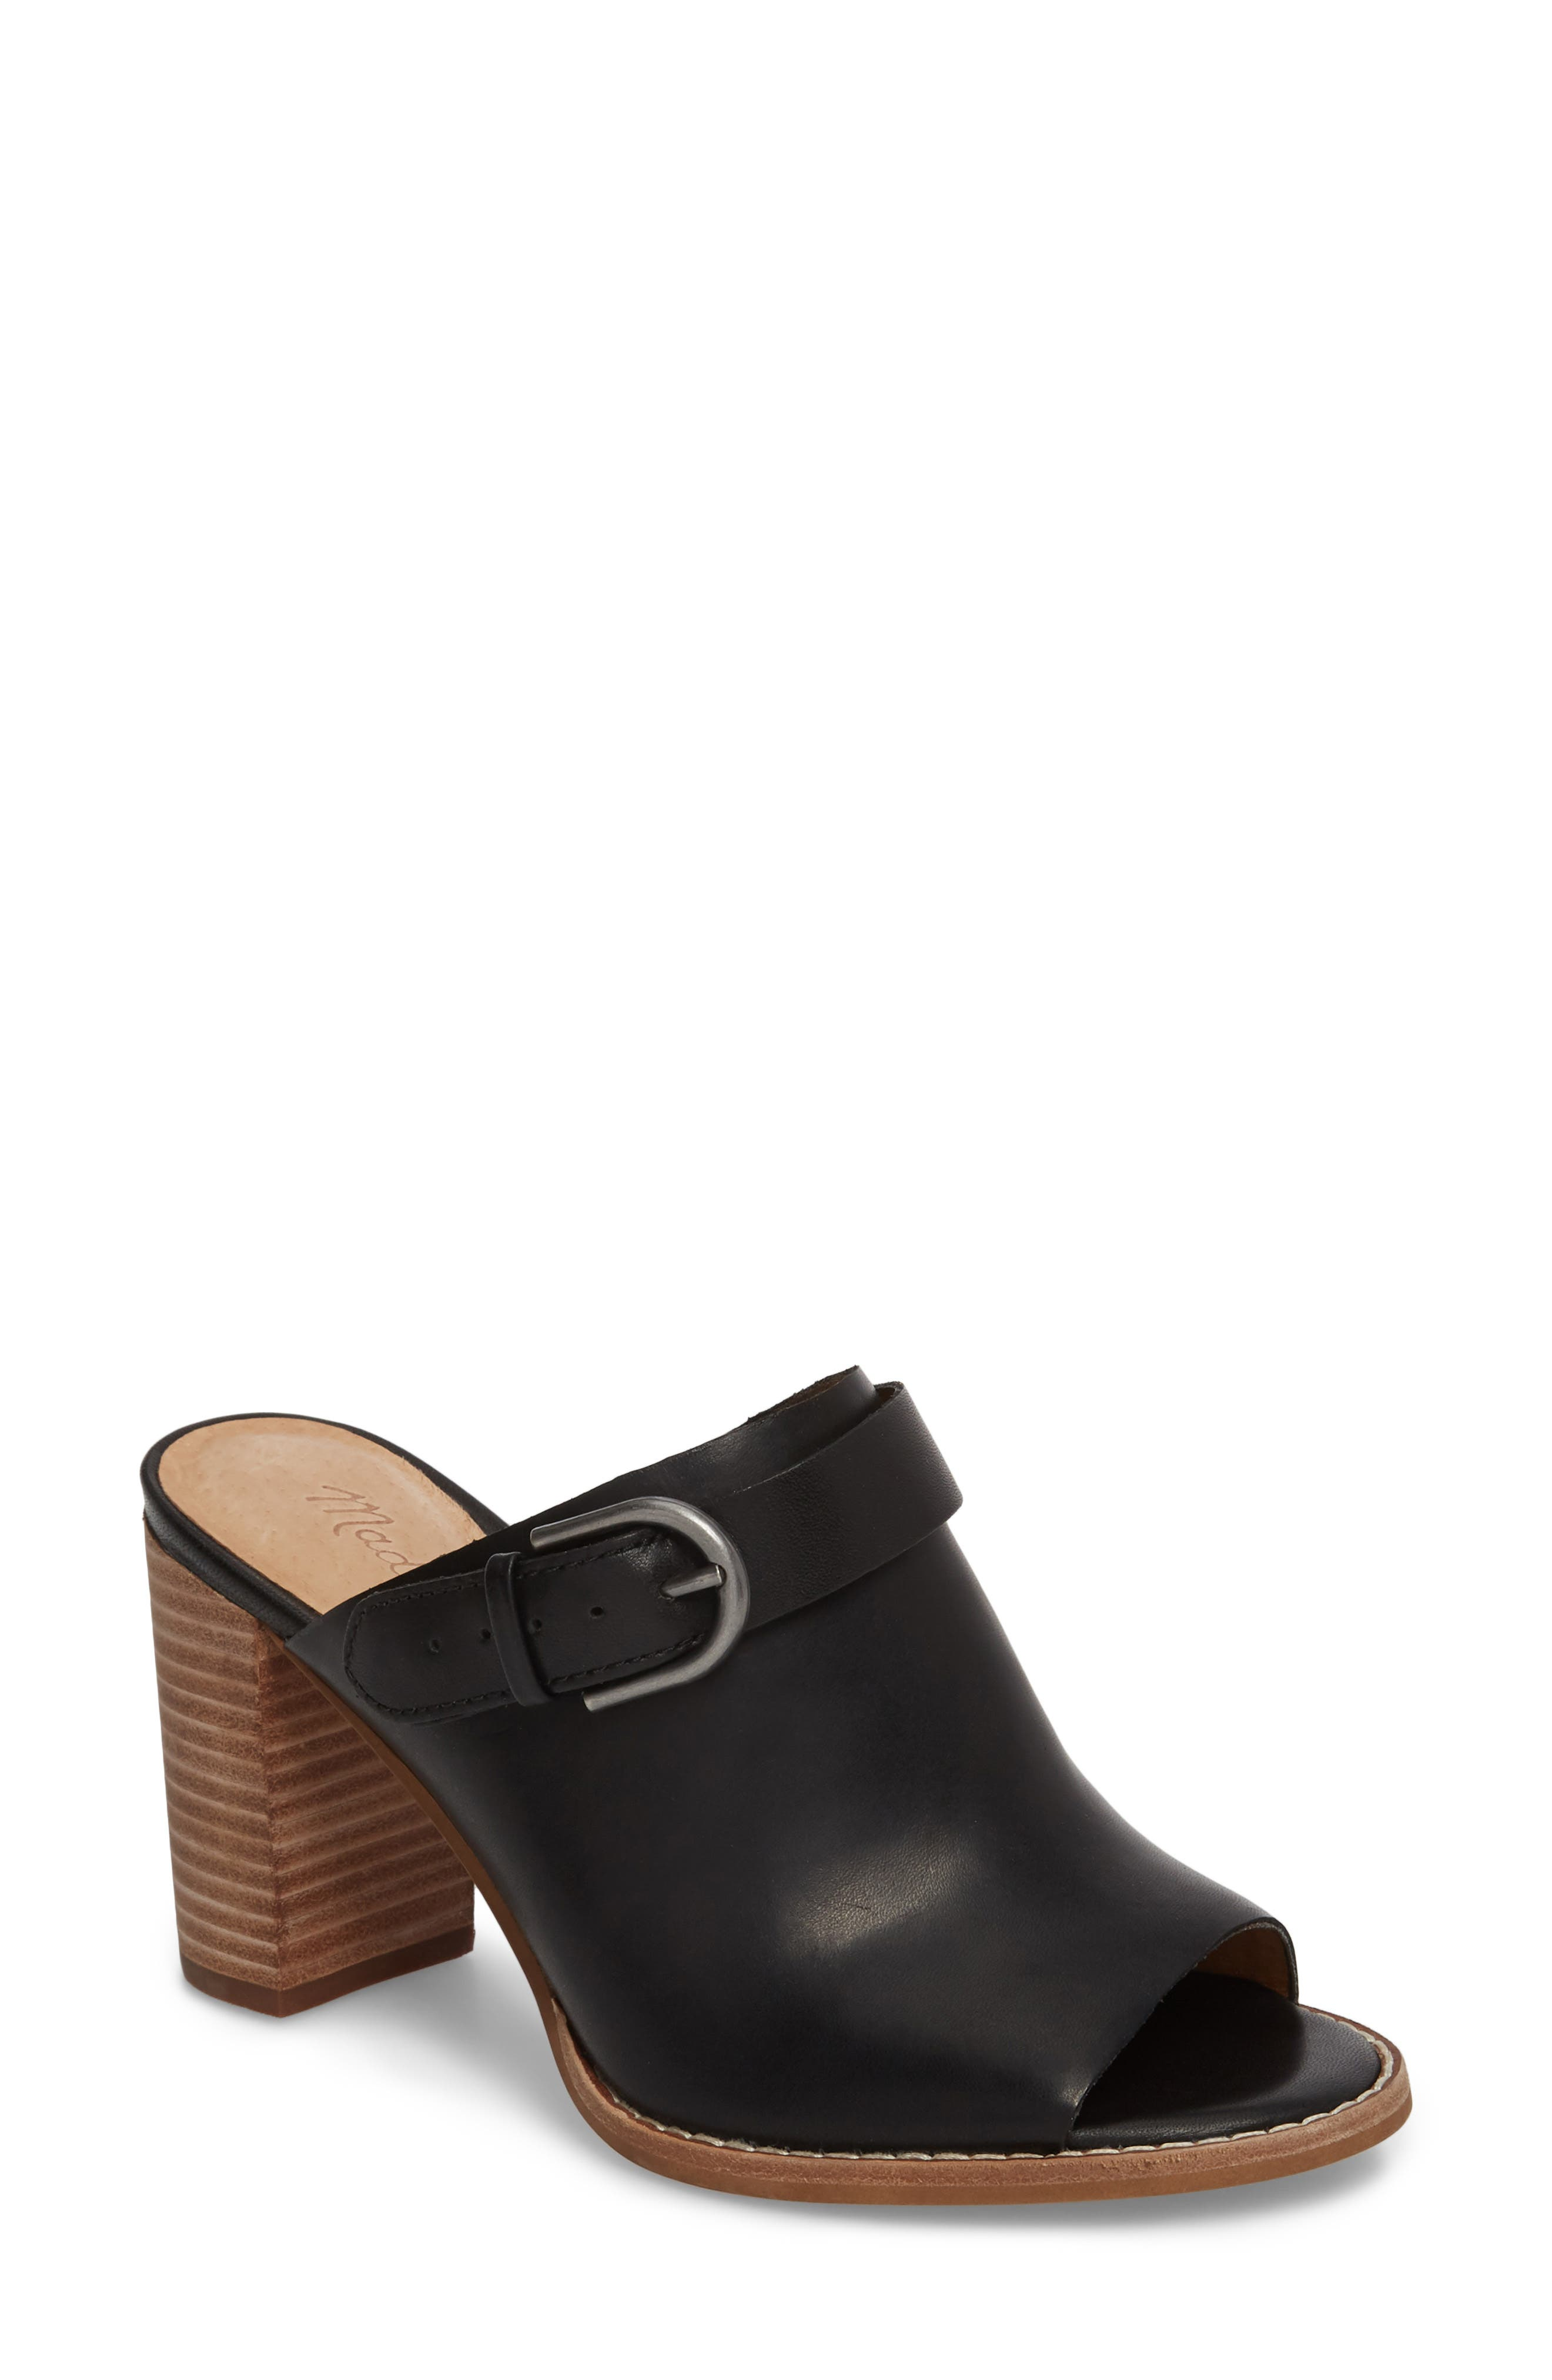 MADEWELL Riley Slingback Mule, Main, color, TRUE BLACK LEATHER